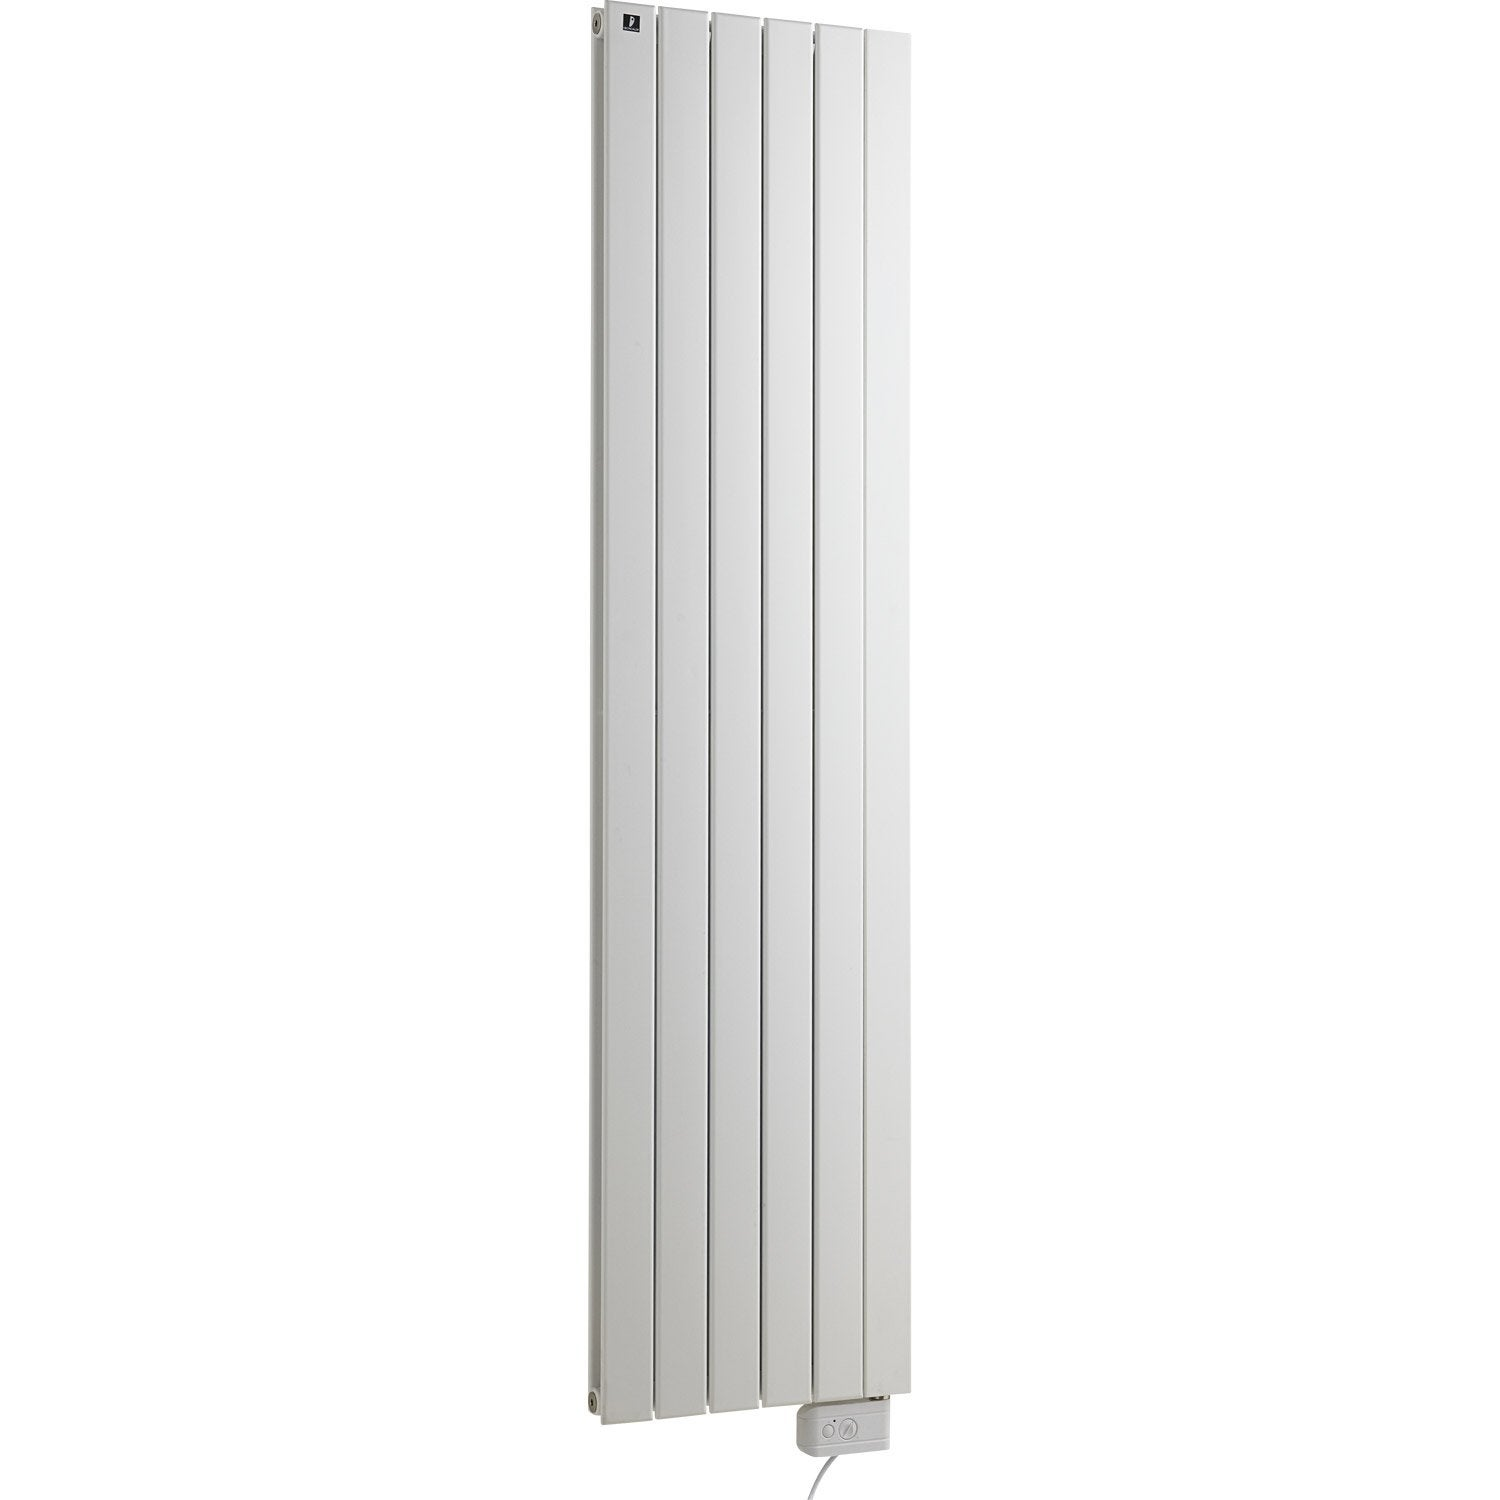 radiateur lectrique inertie fluide deltacalor ramada 1500w leroy merlin. Black Bedroom Furniture Sets. Home Design Ideas